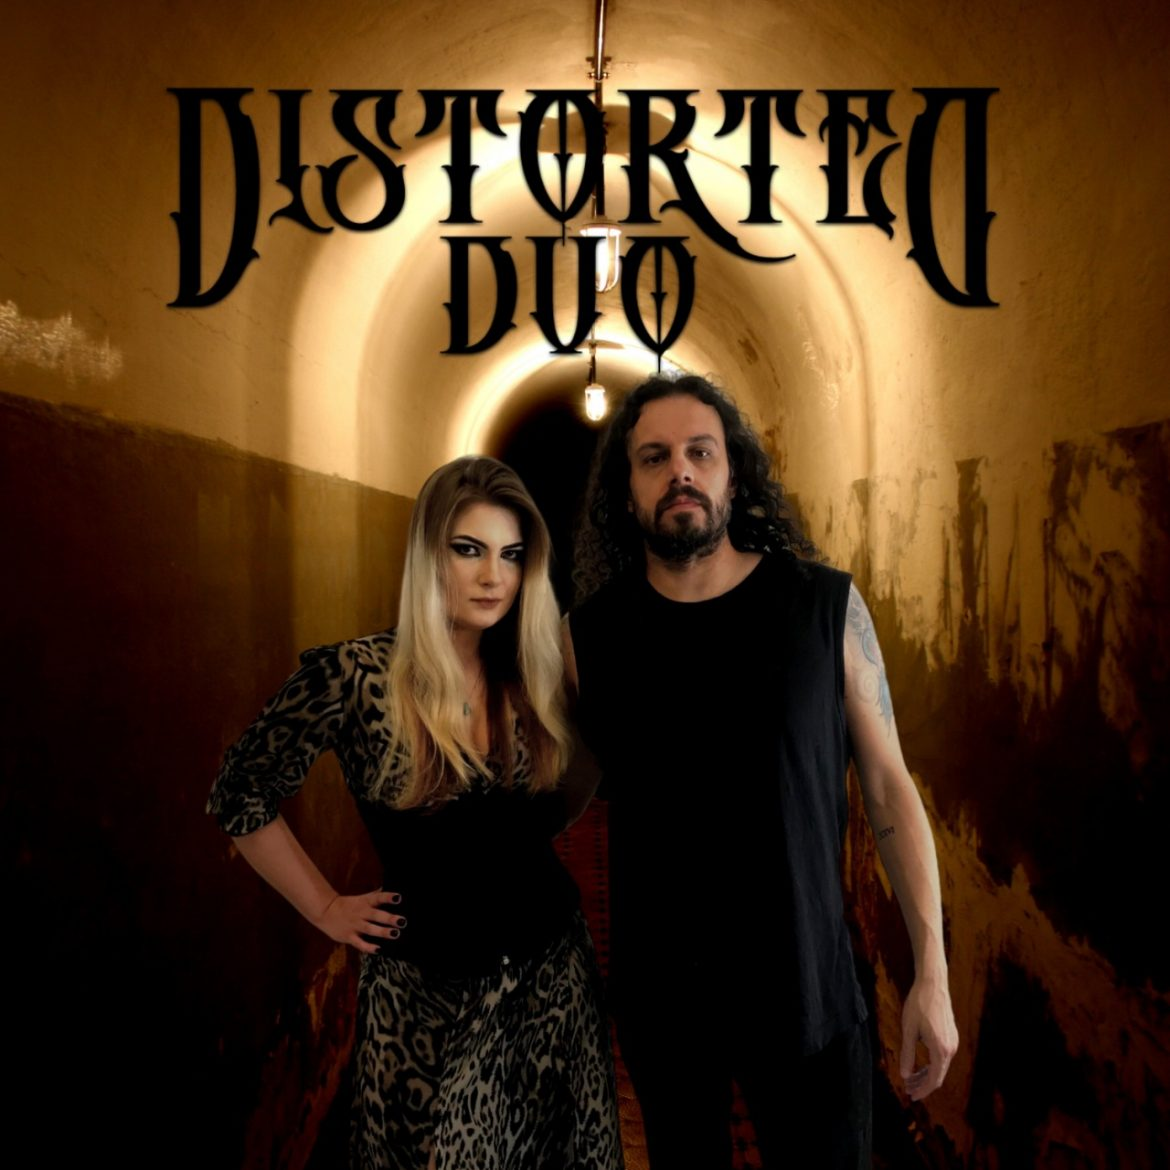 Distorted Duo